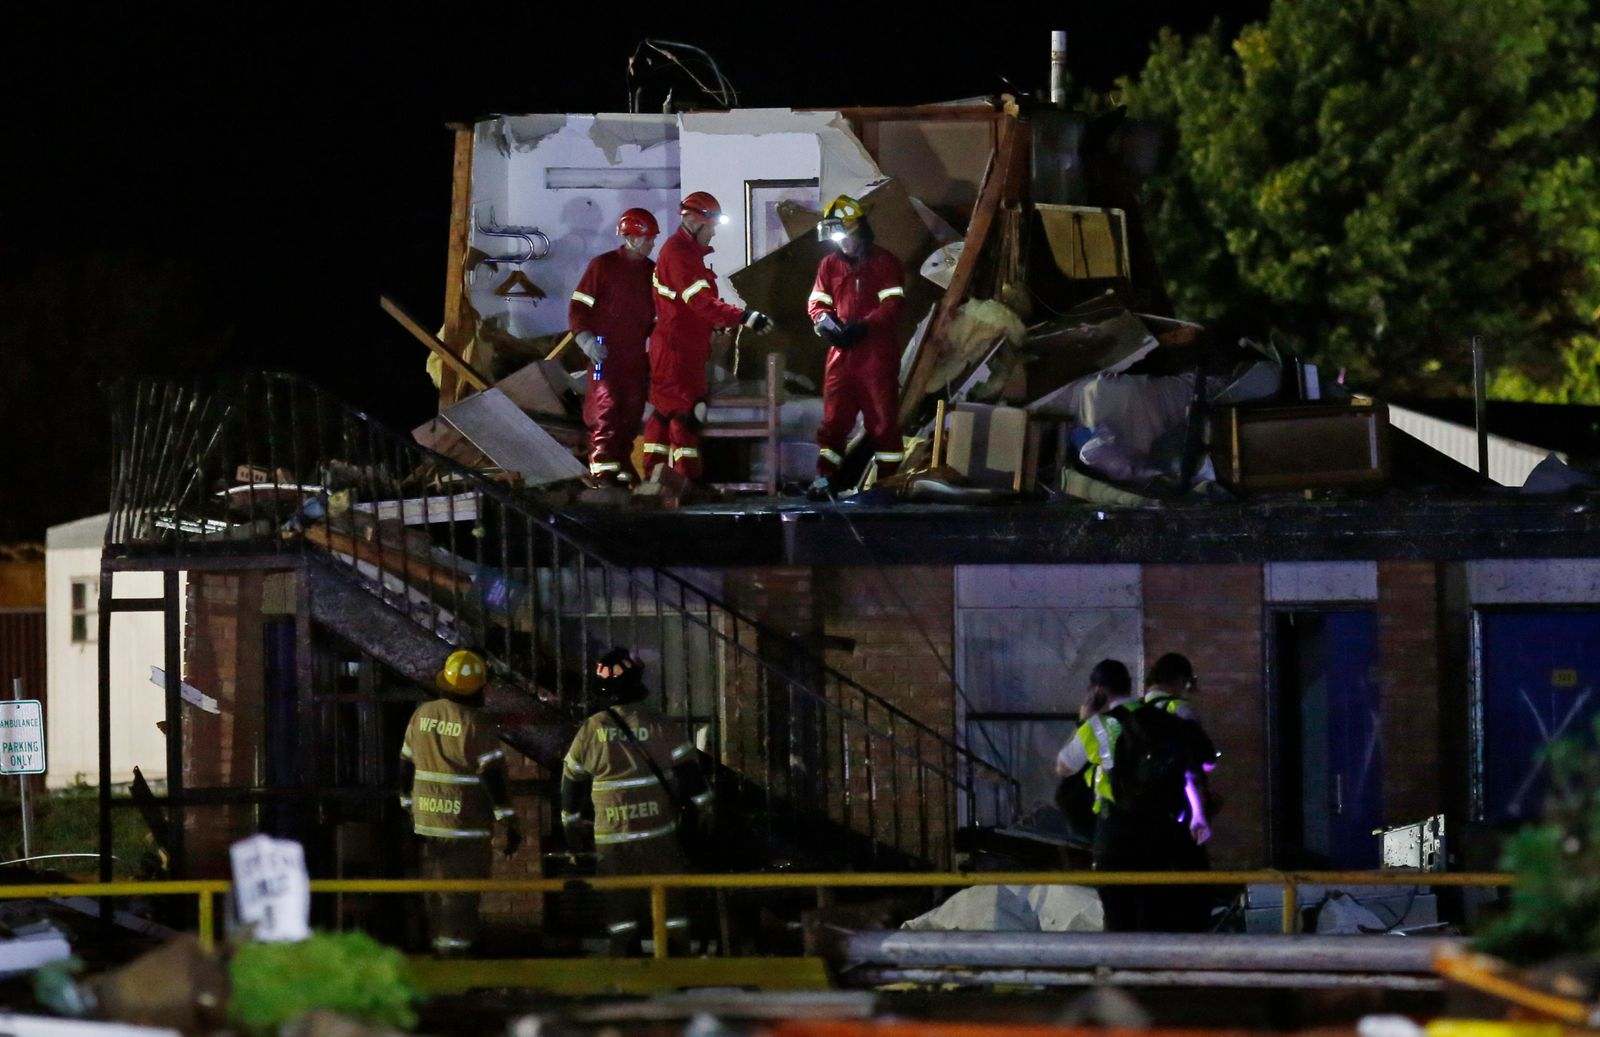 Emergency workers check what is left of the second floor of a hotel, Sunday, May 26, 2019, in El Reno, Ok., following a likely tornado touchdown late Saturday night. (AP Photo/Sue Ogrocki)